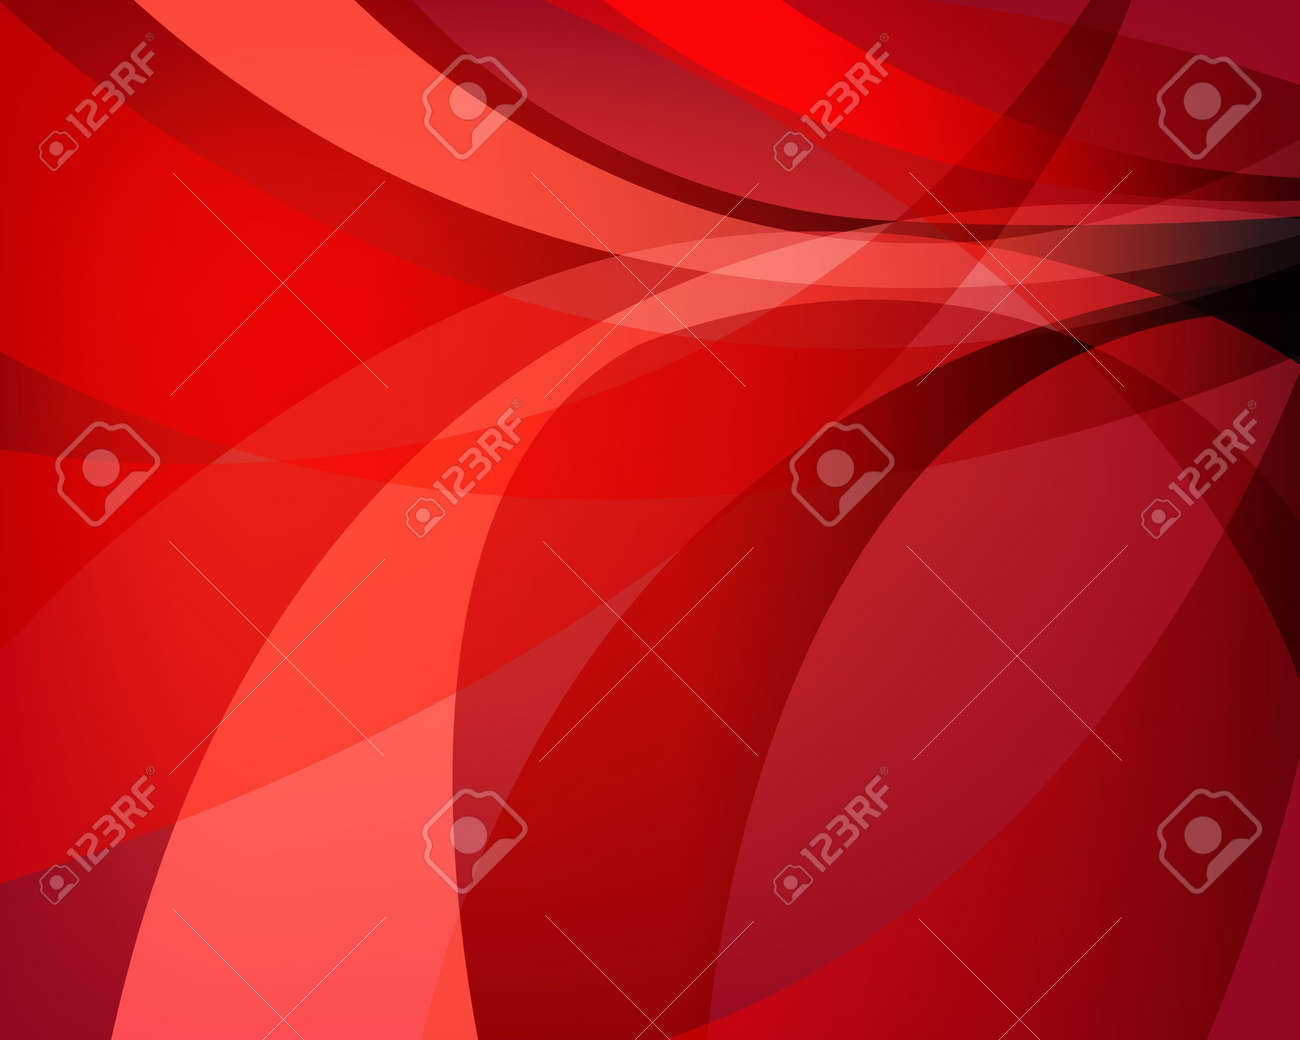 Abstract red background Stock Photo - 1779432